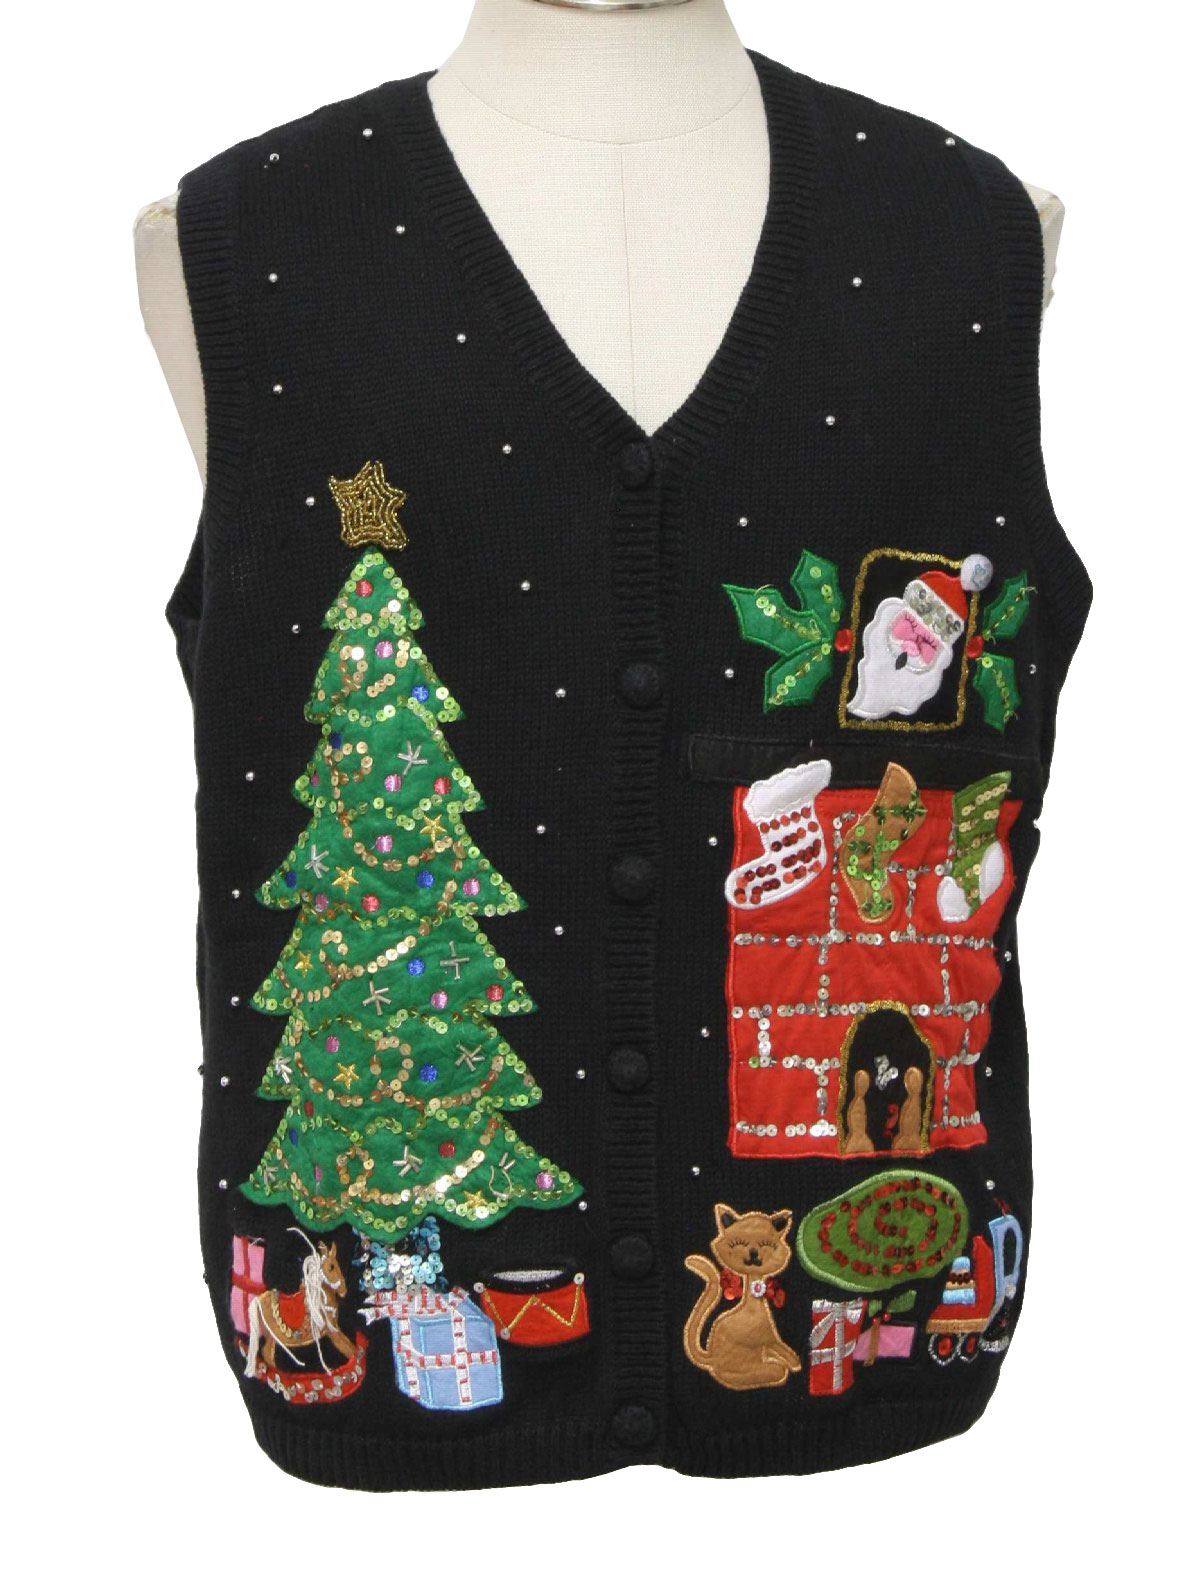 Ugly Christmas Sweater Vest Basic Editions Unisex Black Background Ramie Cotton Blend Button